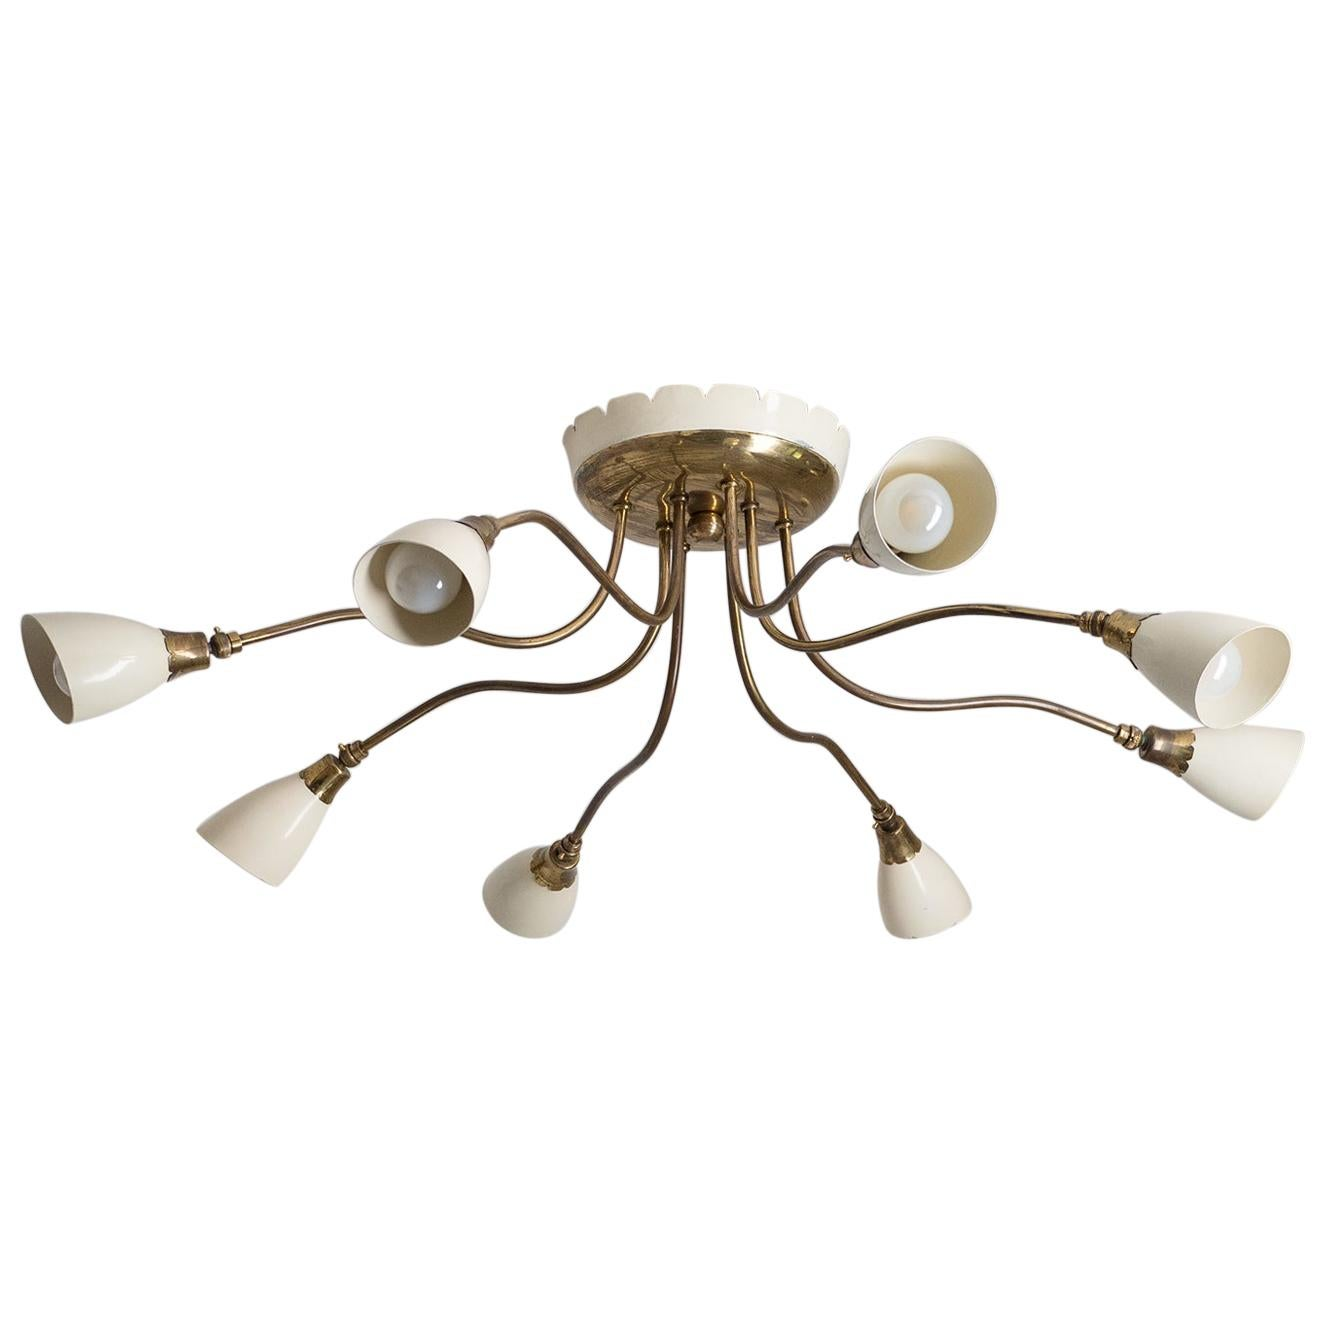 Italian Ceiling Light, circa 1950, Brass and Ivory Lacquer